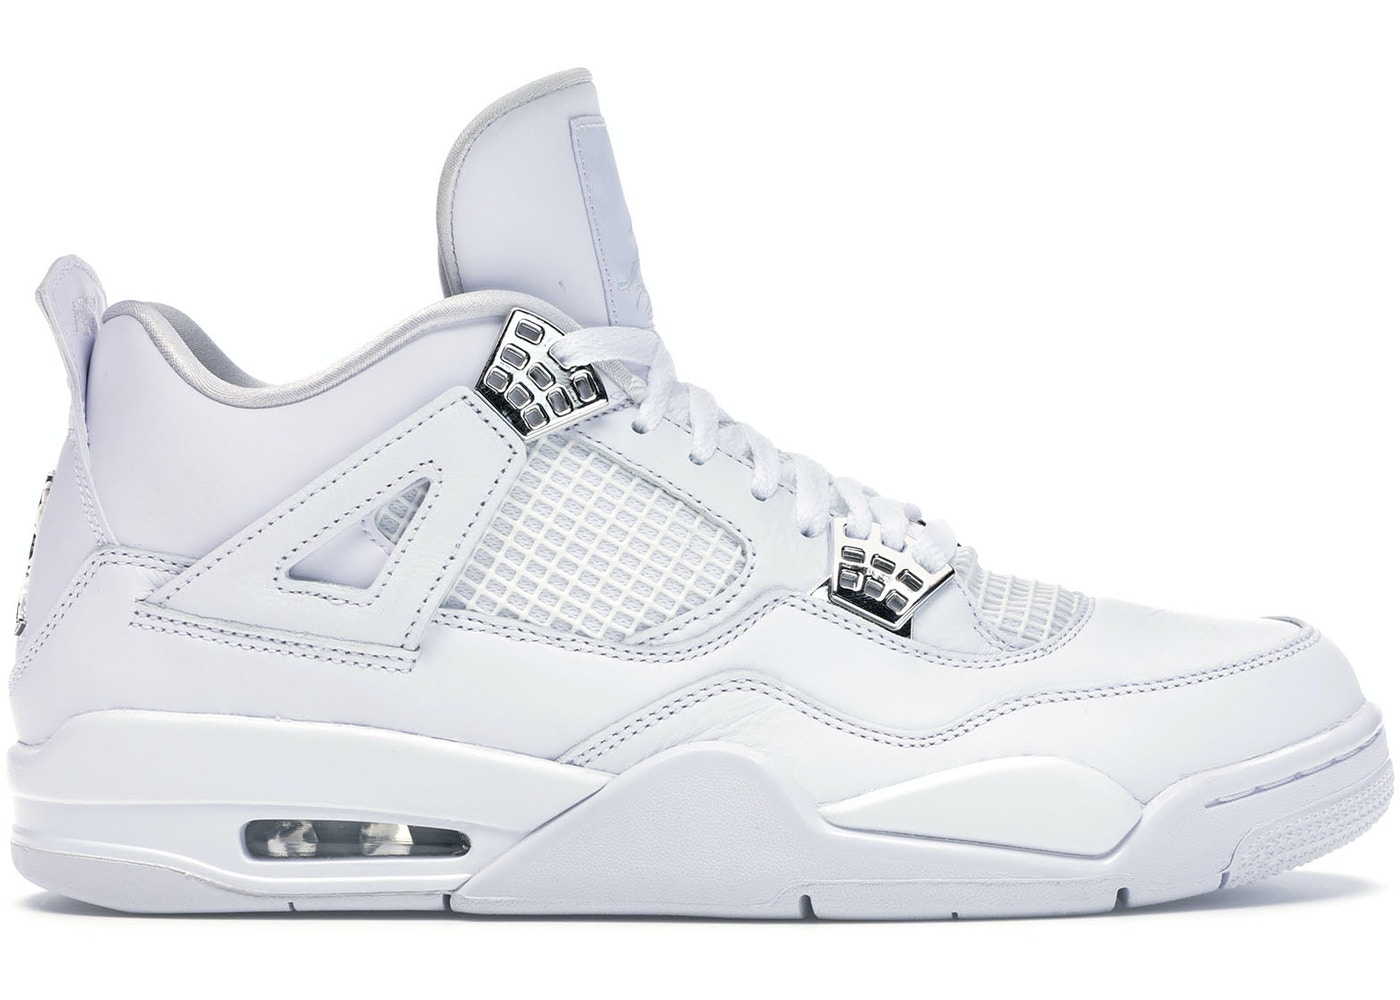 210c1f1d7150 Jordan 4 Retro Pure Money (2017) - 308497-100